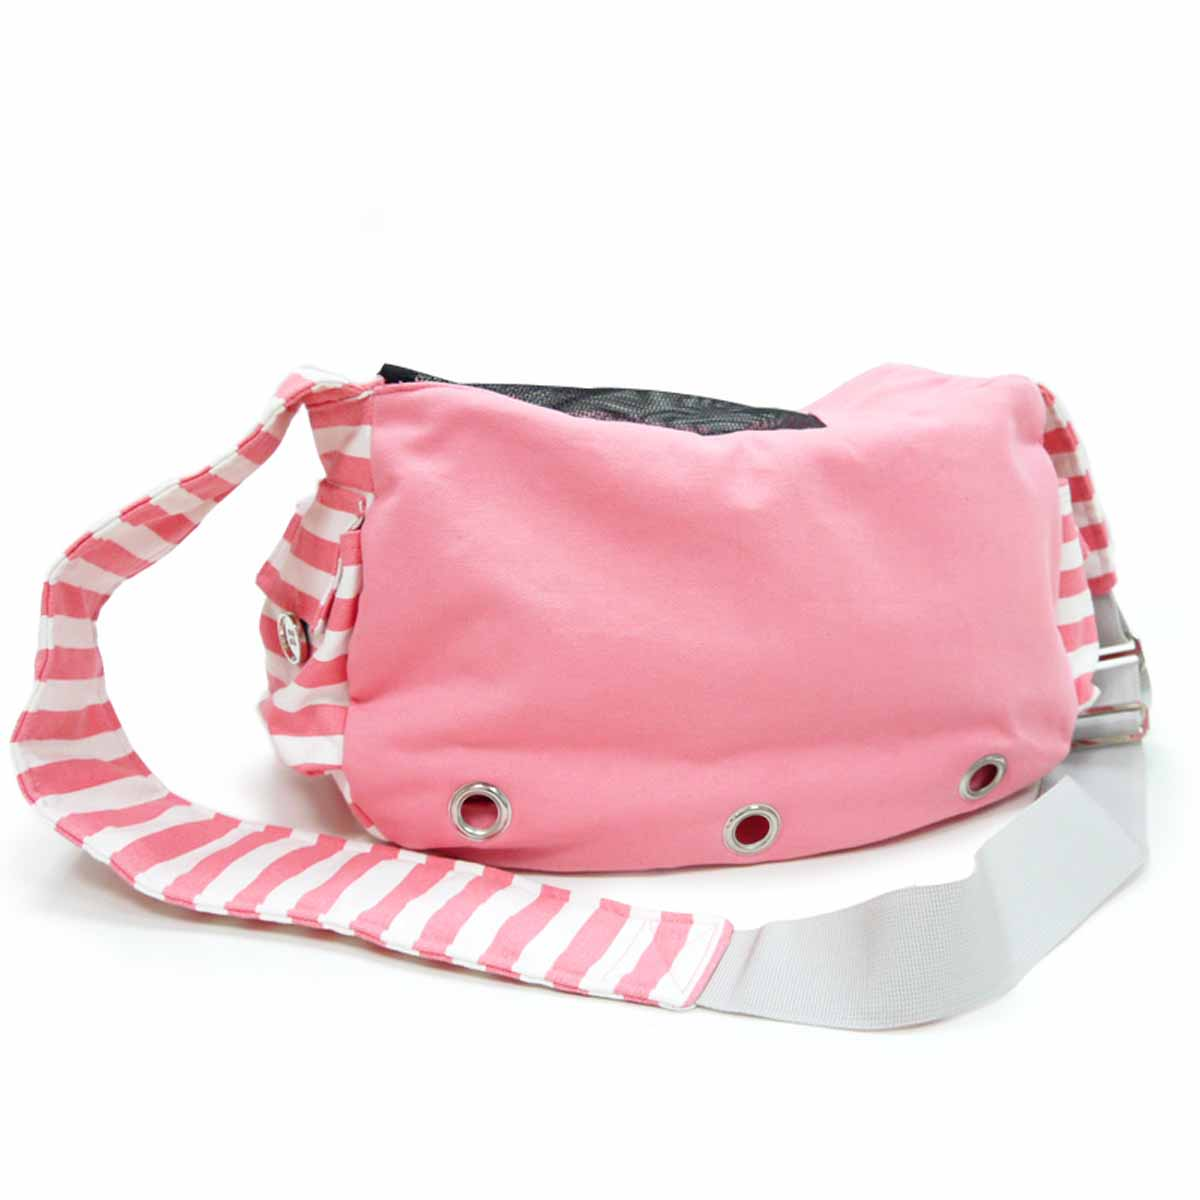 Soft Sling Bag Dog Carrier by Dogo - Pink with Same Day Shipping ...